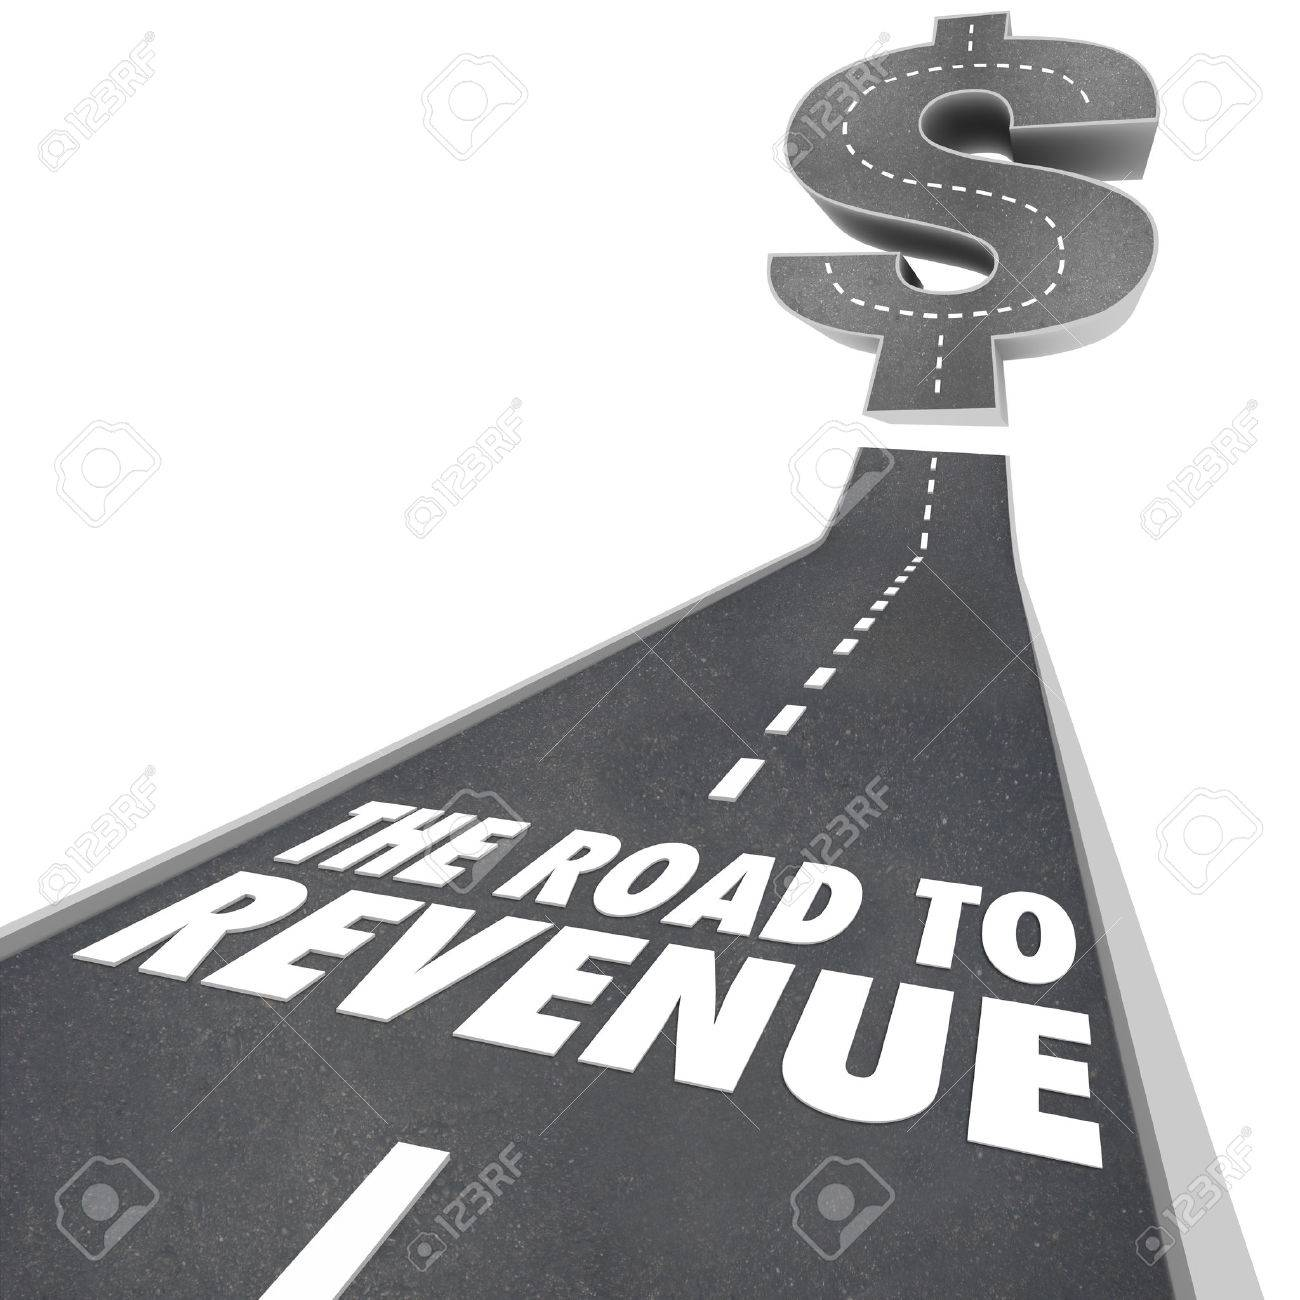 Road To Revenue Words On A Street Or Pavement With Arrow Rising Up To  Illustrate Making